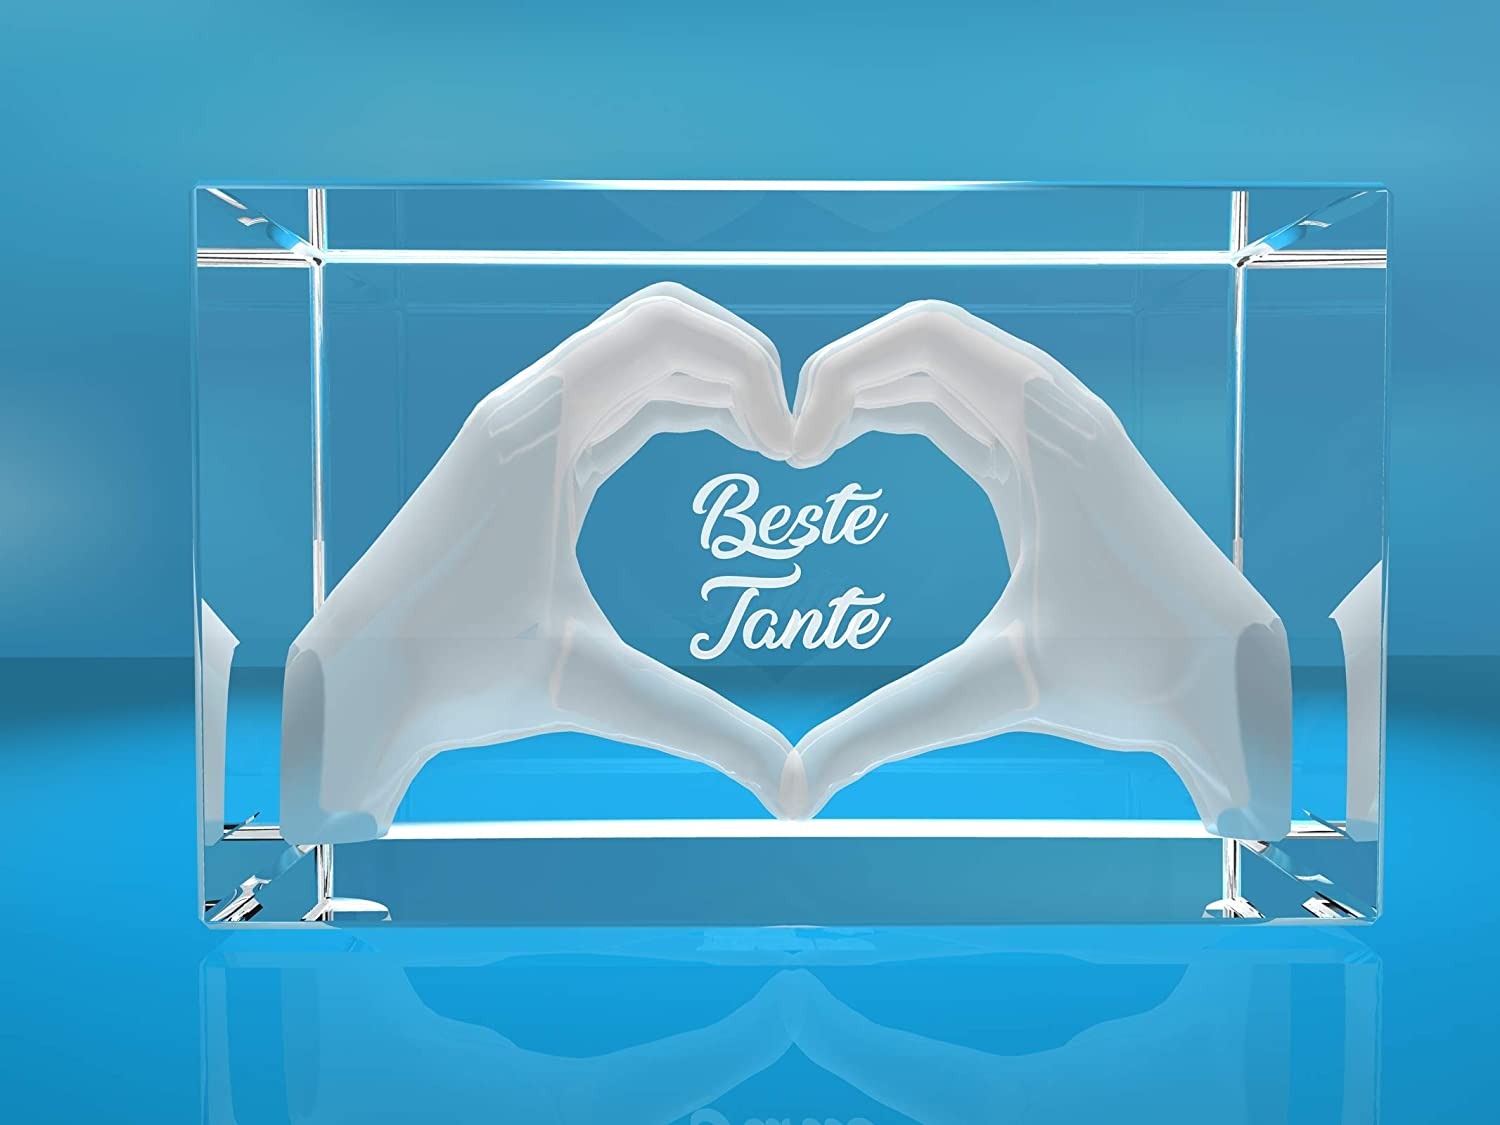 Vip Laser 3d Glass Crystal Engraved I Heart From Two Hands I Text Best Aunt I The Great Mother S Day Birthday Or Christmas Gift Küche Haushalt